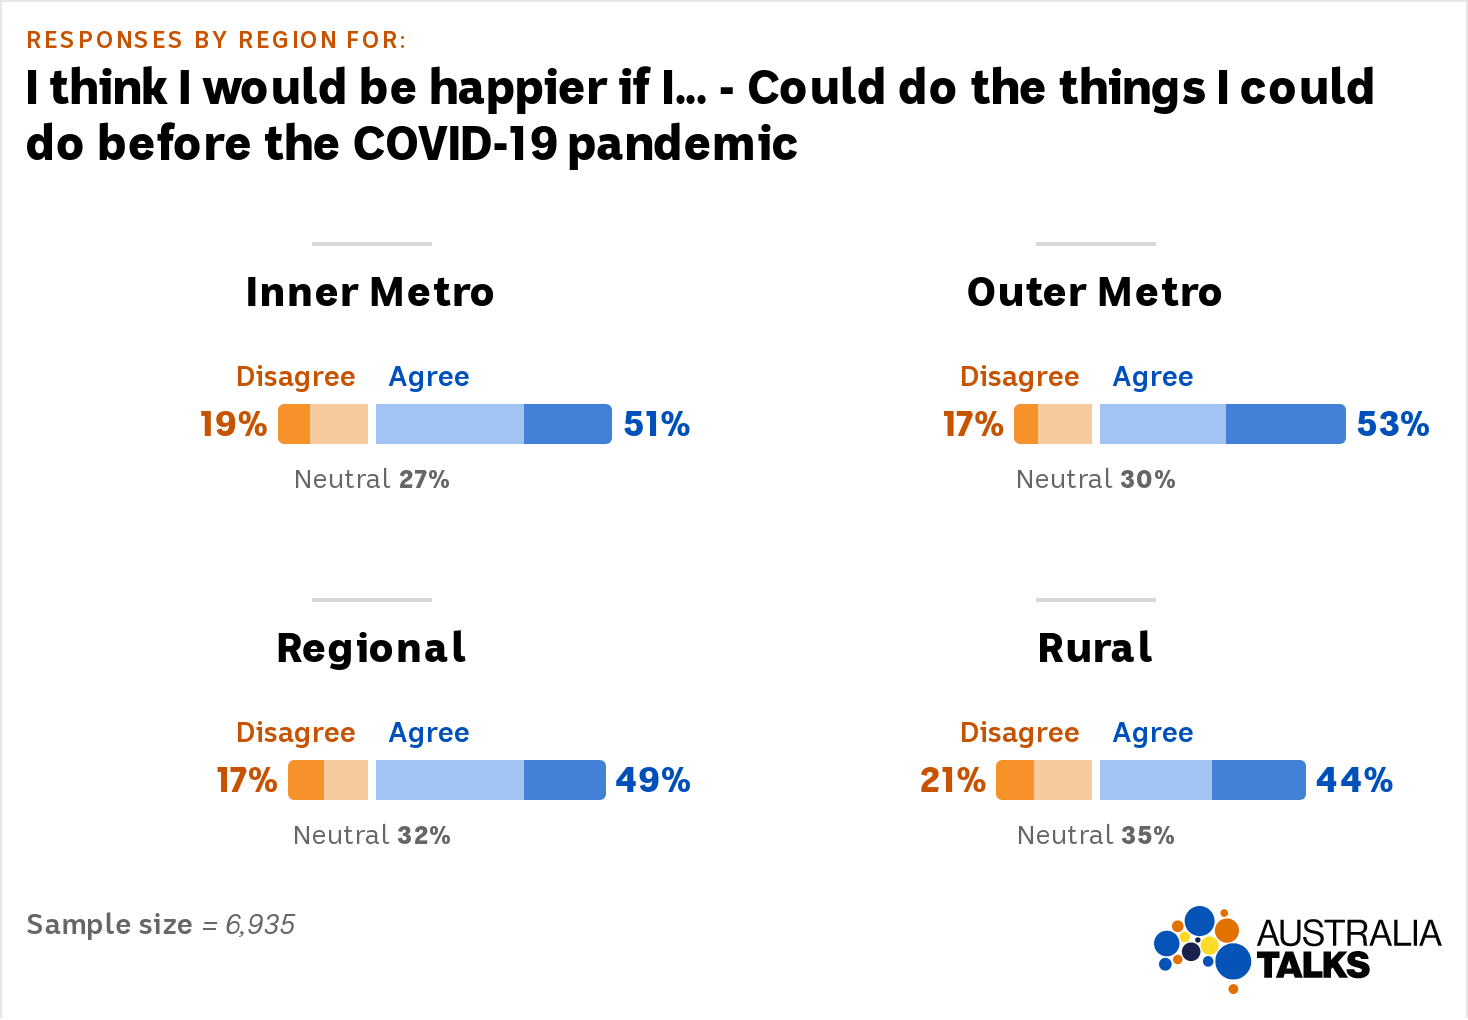 """agreement rates to the statement """"I think I would be happier if I could do the things I did before the COVID-19 pandemic""""."""